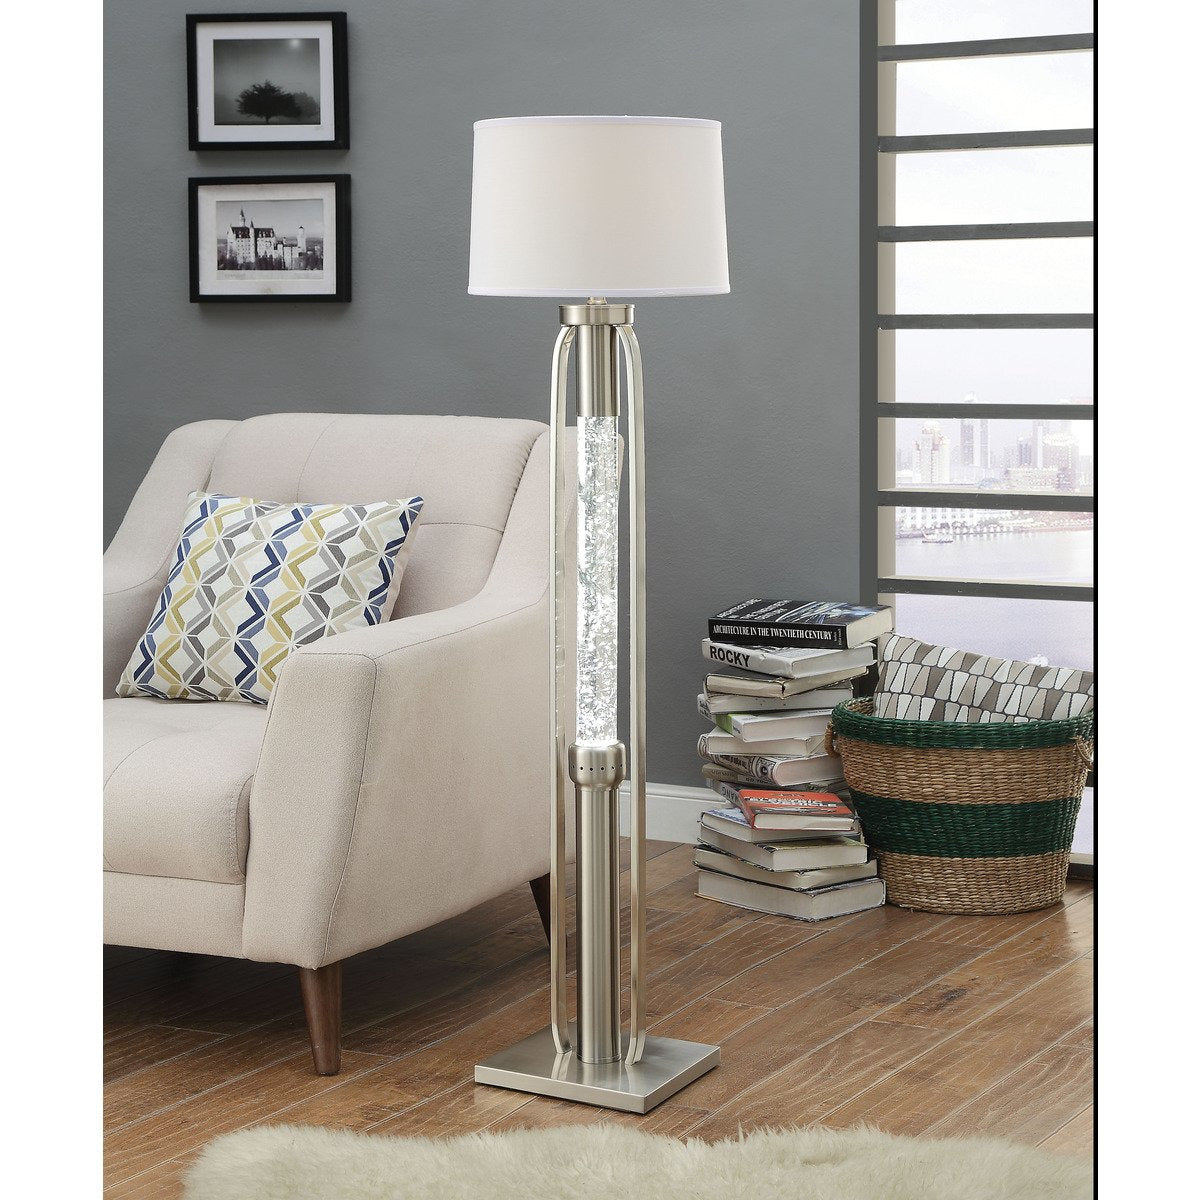 Floor Lamps - Contemporary Metal Floor Lamp With Fabric Drum Shade And LED Glass Cylinder, Silver And White